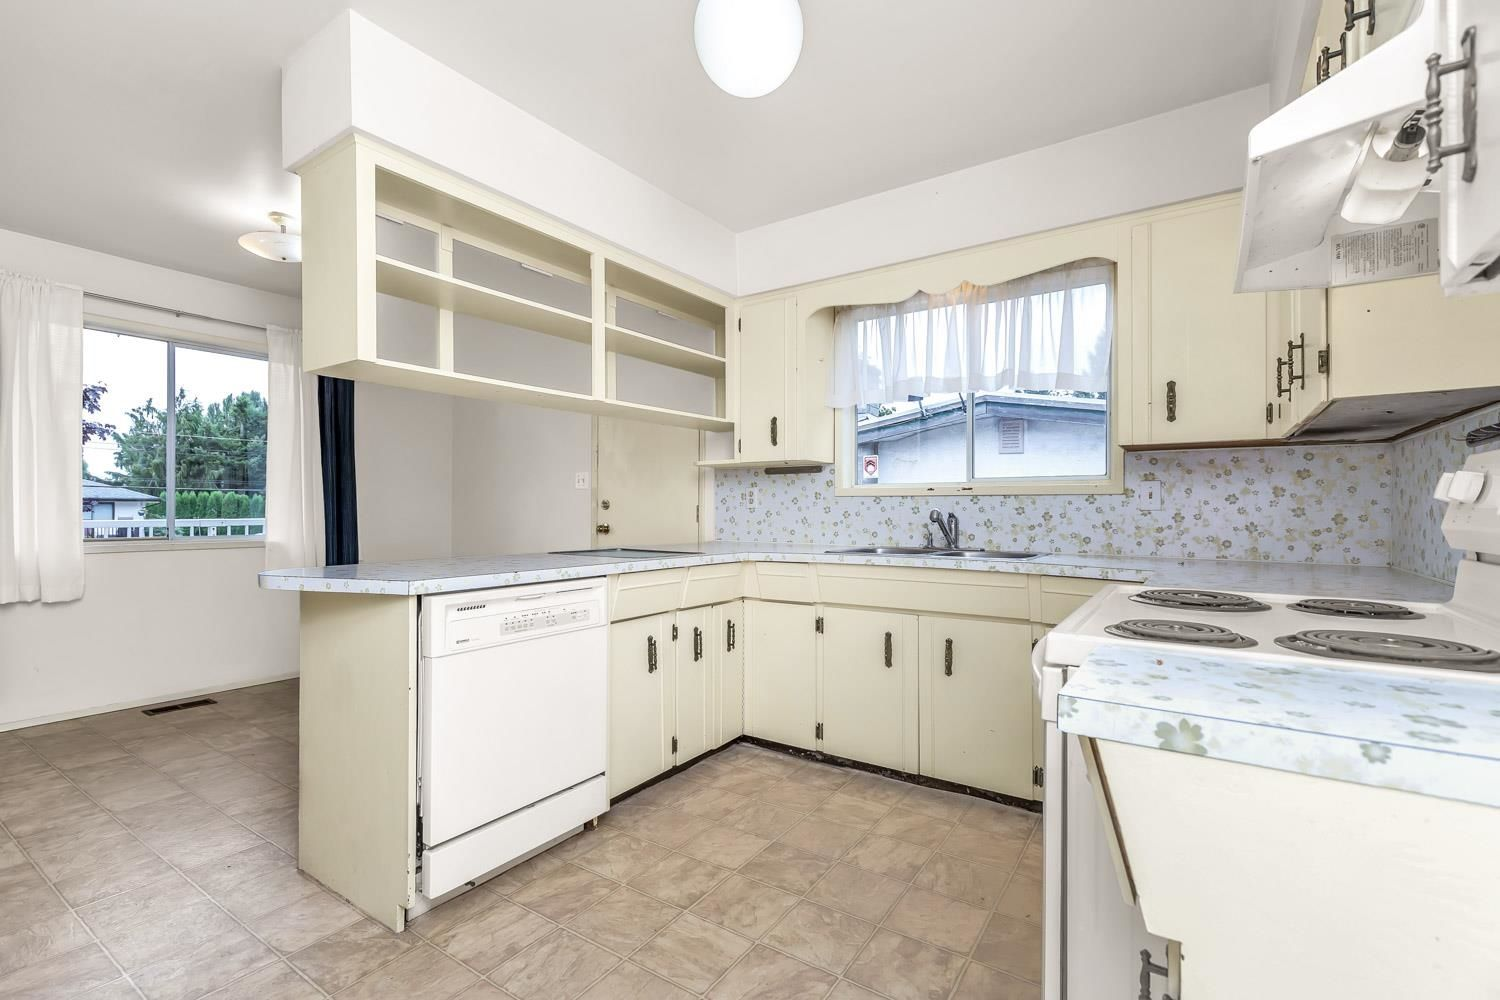 Photo 5: Photos: 2614 VALEMONT Crescent in Abbotsford: Abbotsford West House for sale : MLS®# R2611366